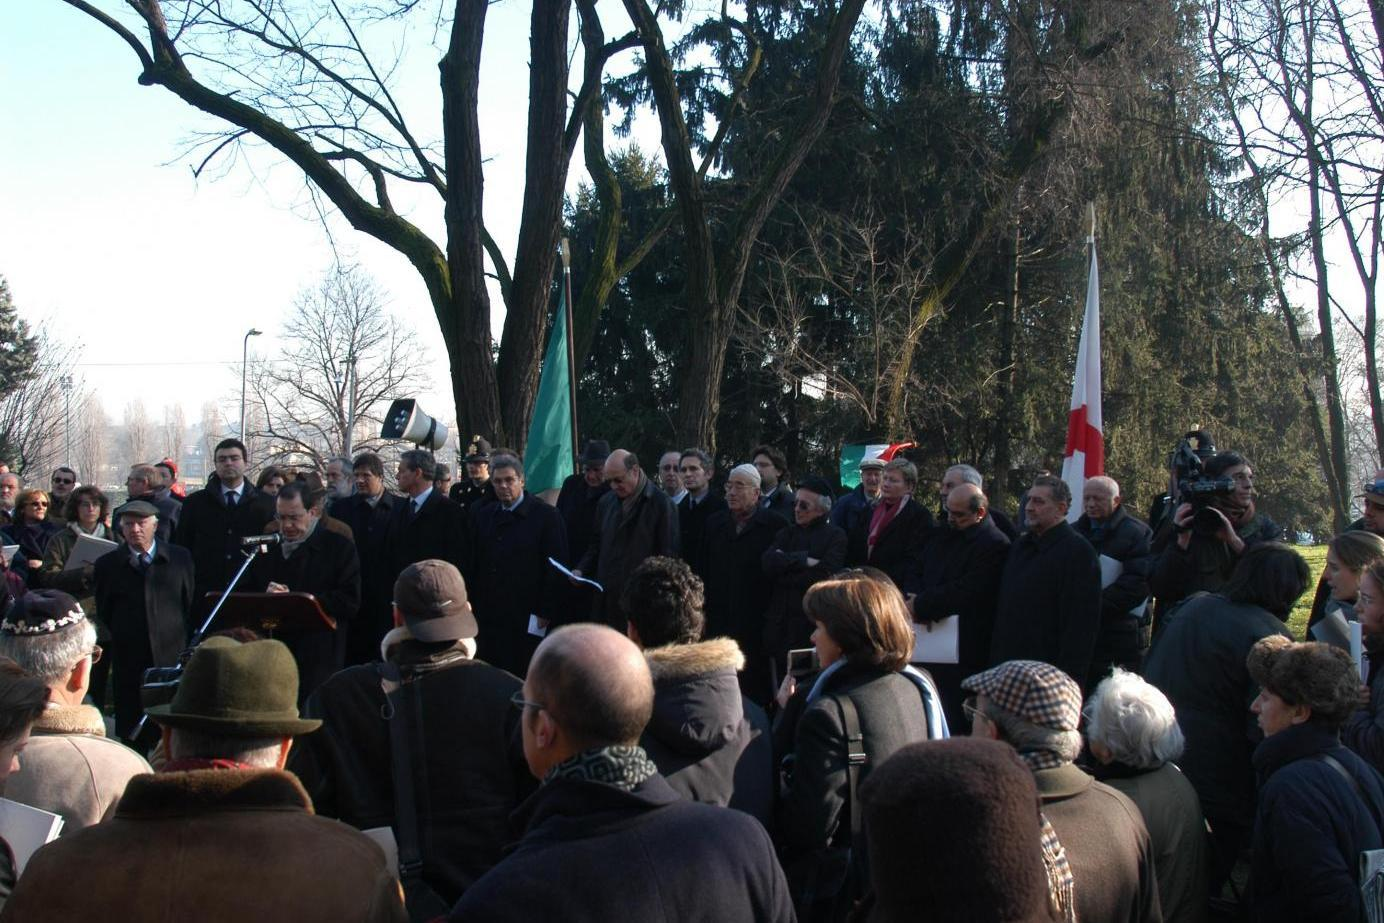 2003 - Inauguration of the Garden of the Righteous of Milan